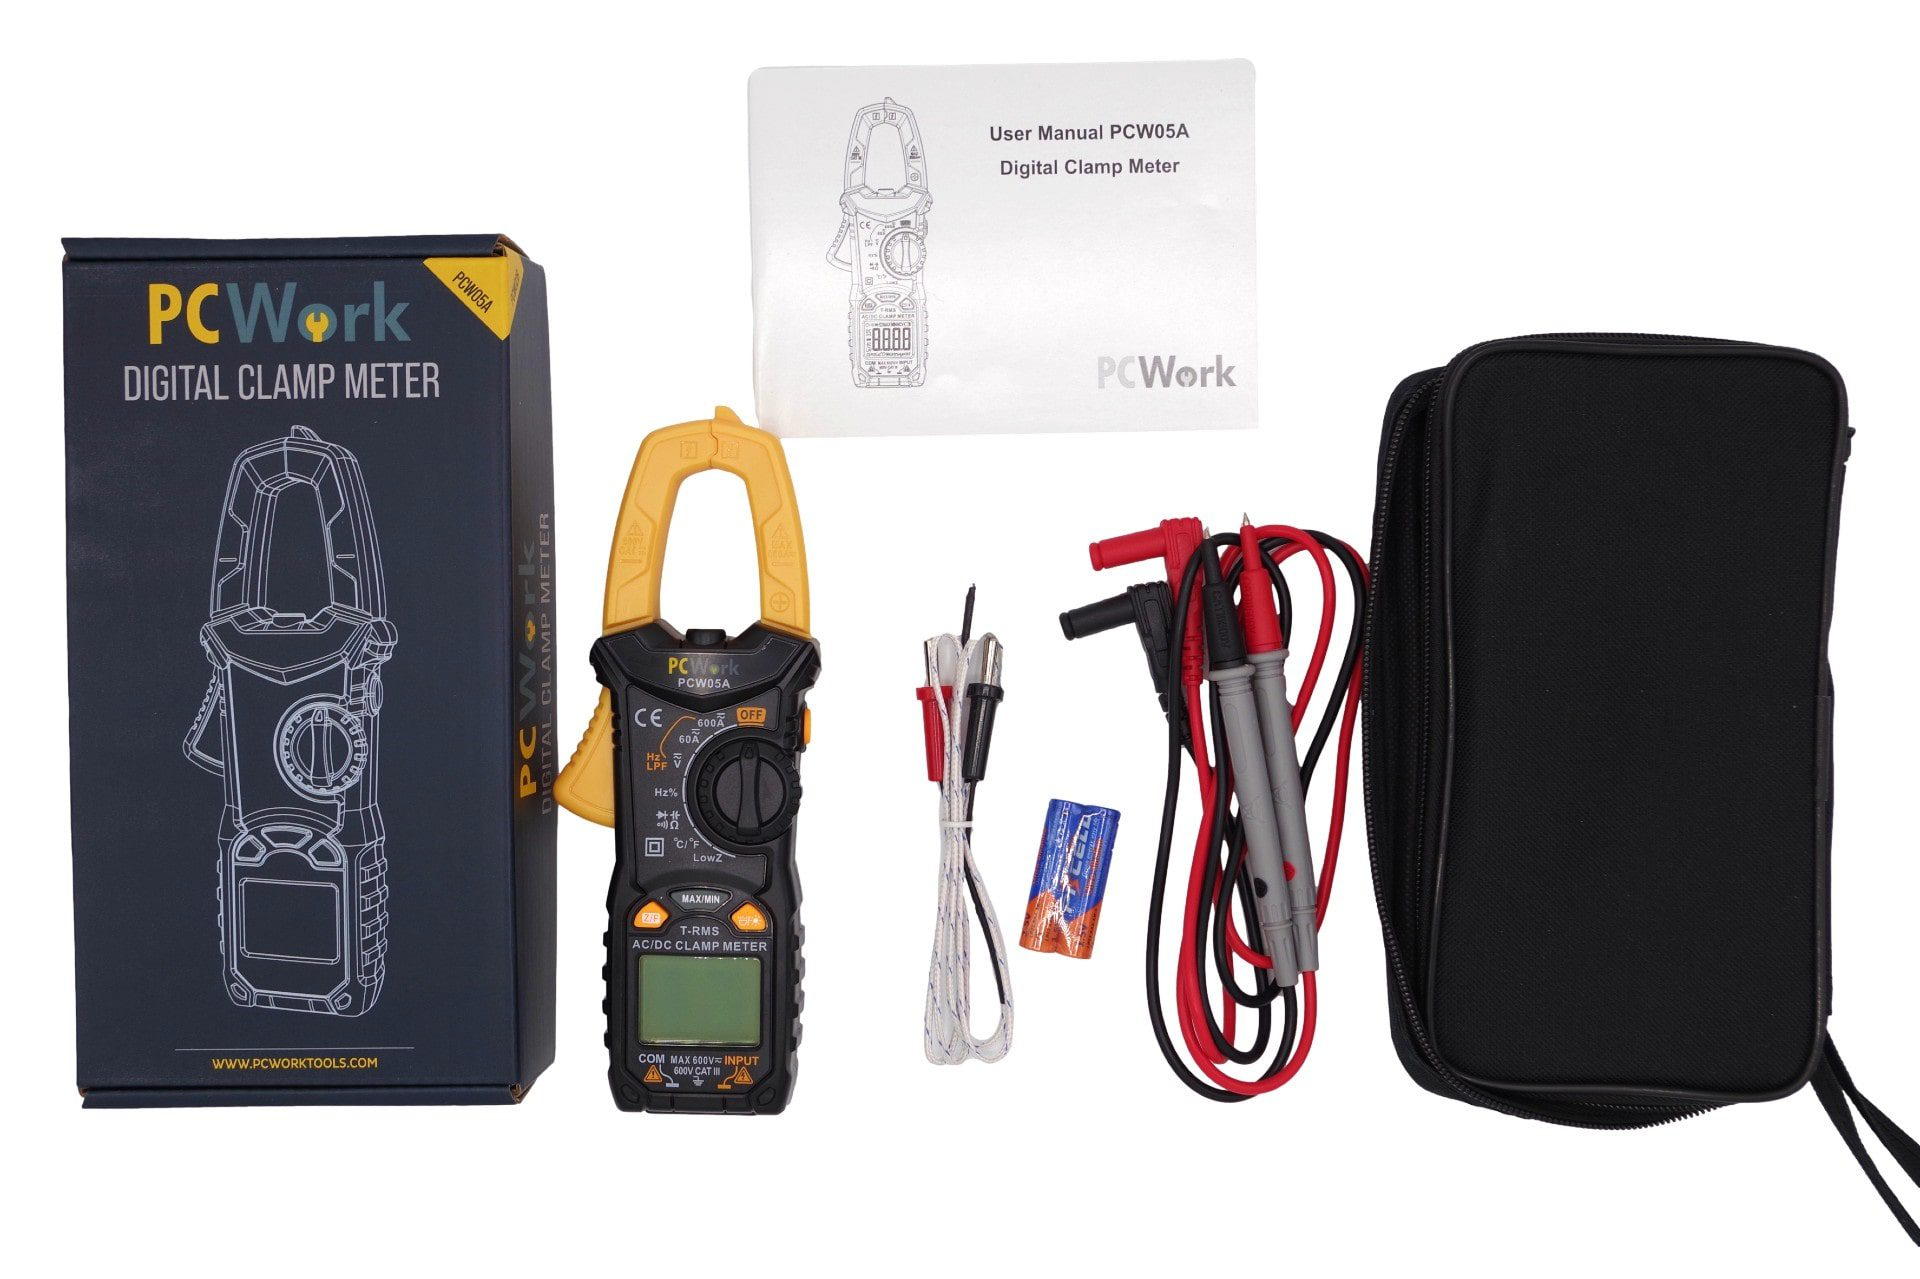 pcw05a digital clamp meter included items